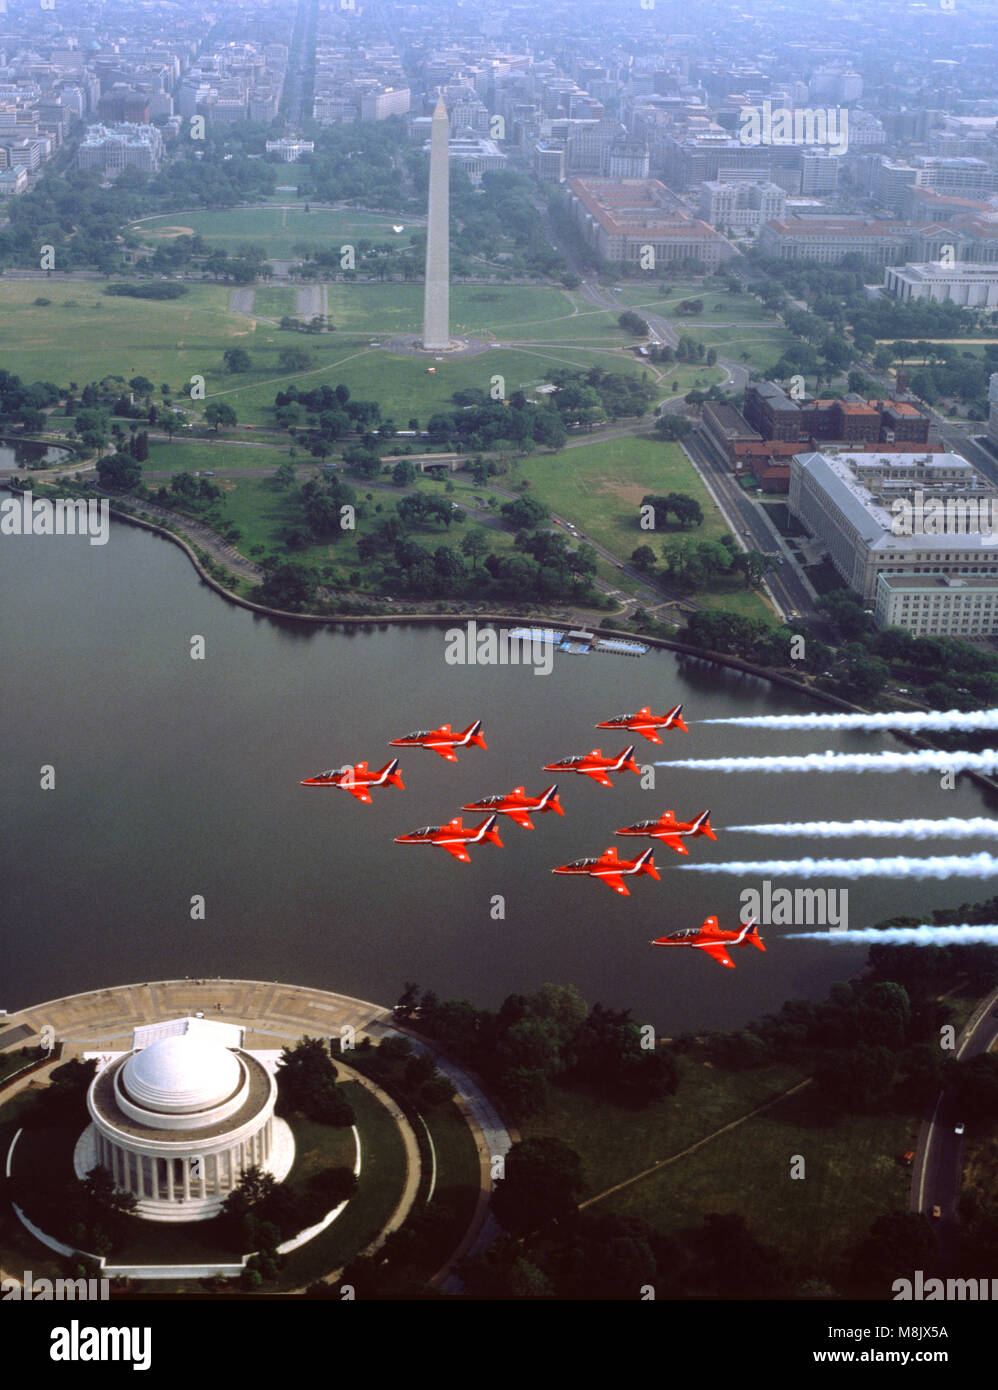 Raf Aerobatic Team, The Red Arrows, flying over the Jefferson Memorial,and the Washington Monument, Washington D.C. - Stock Image